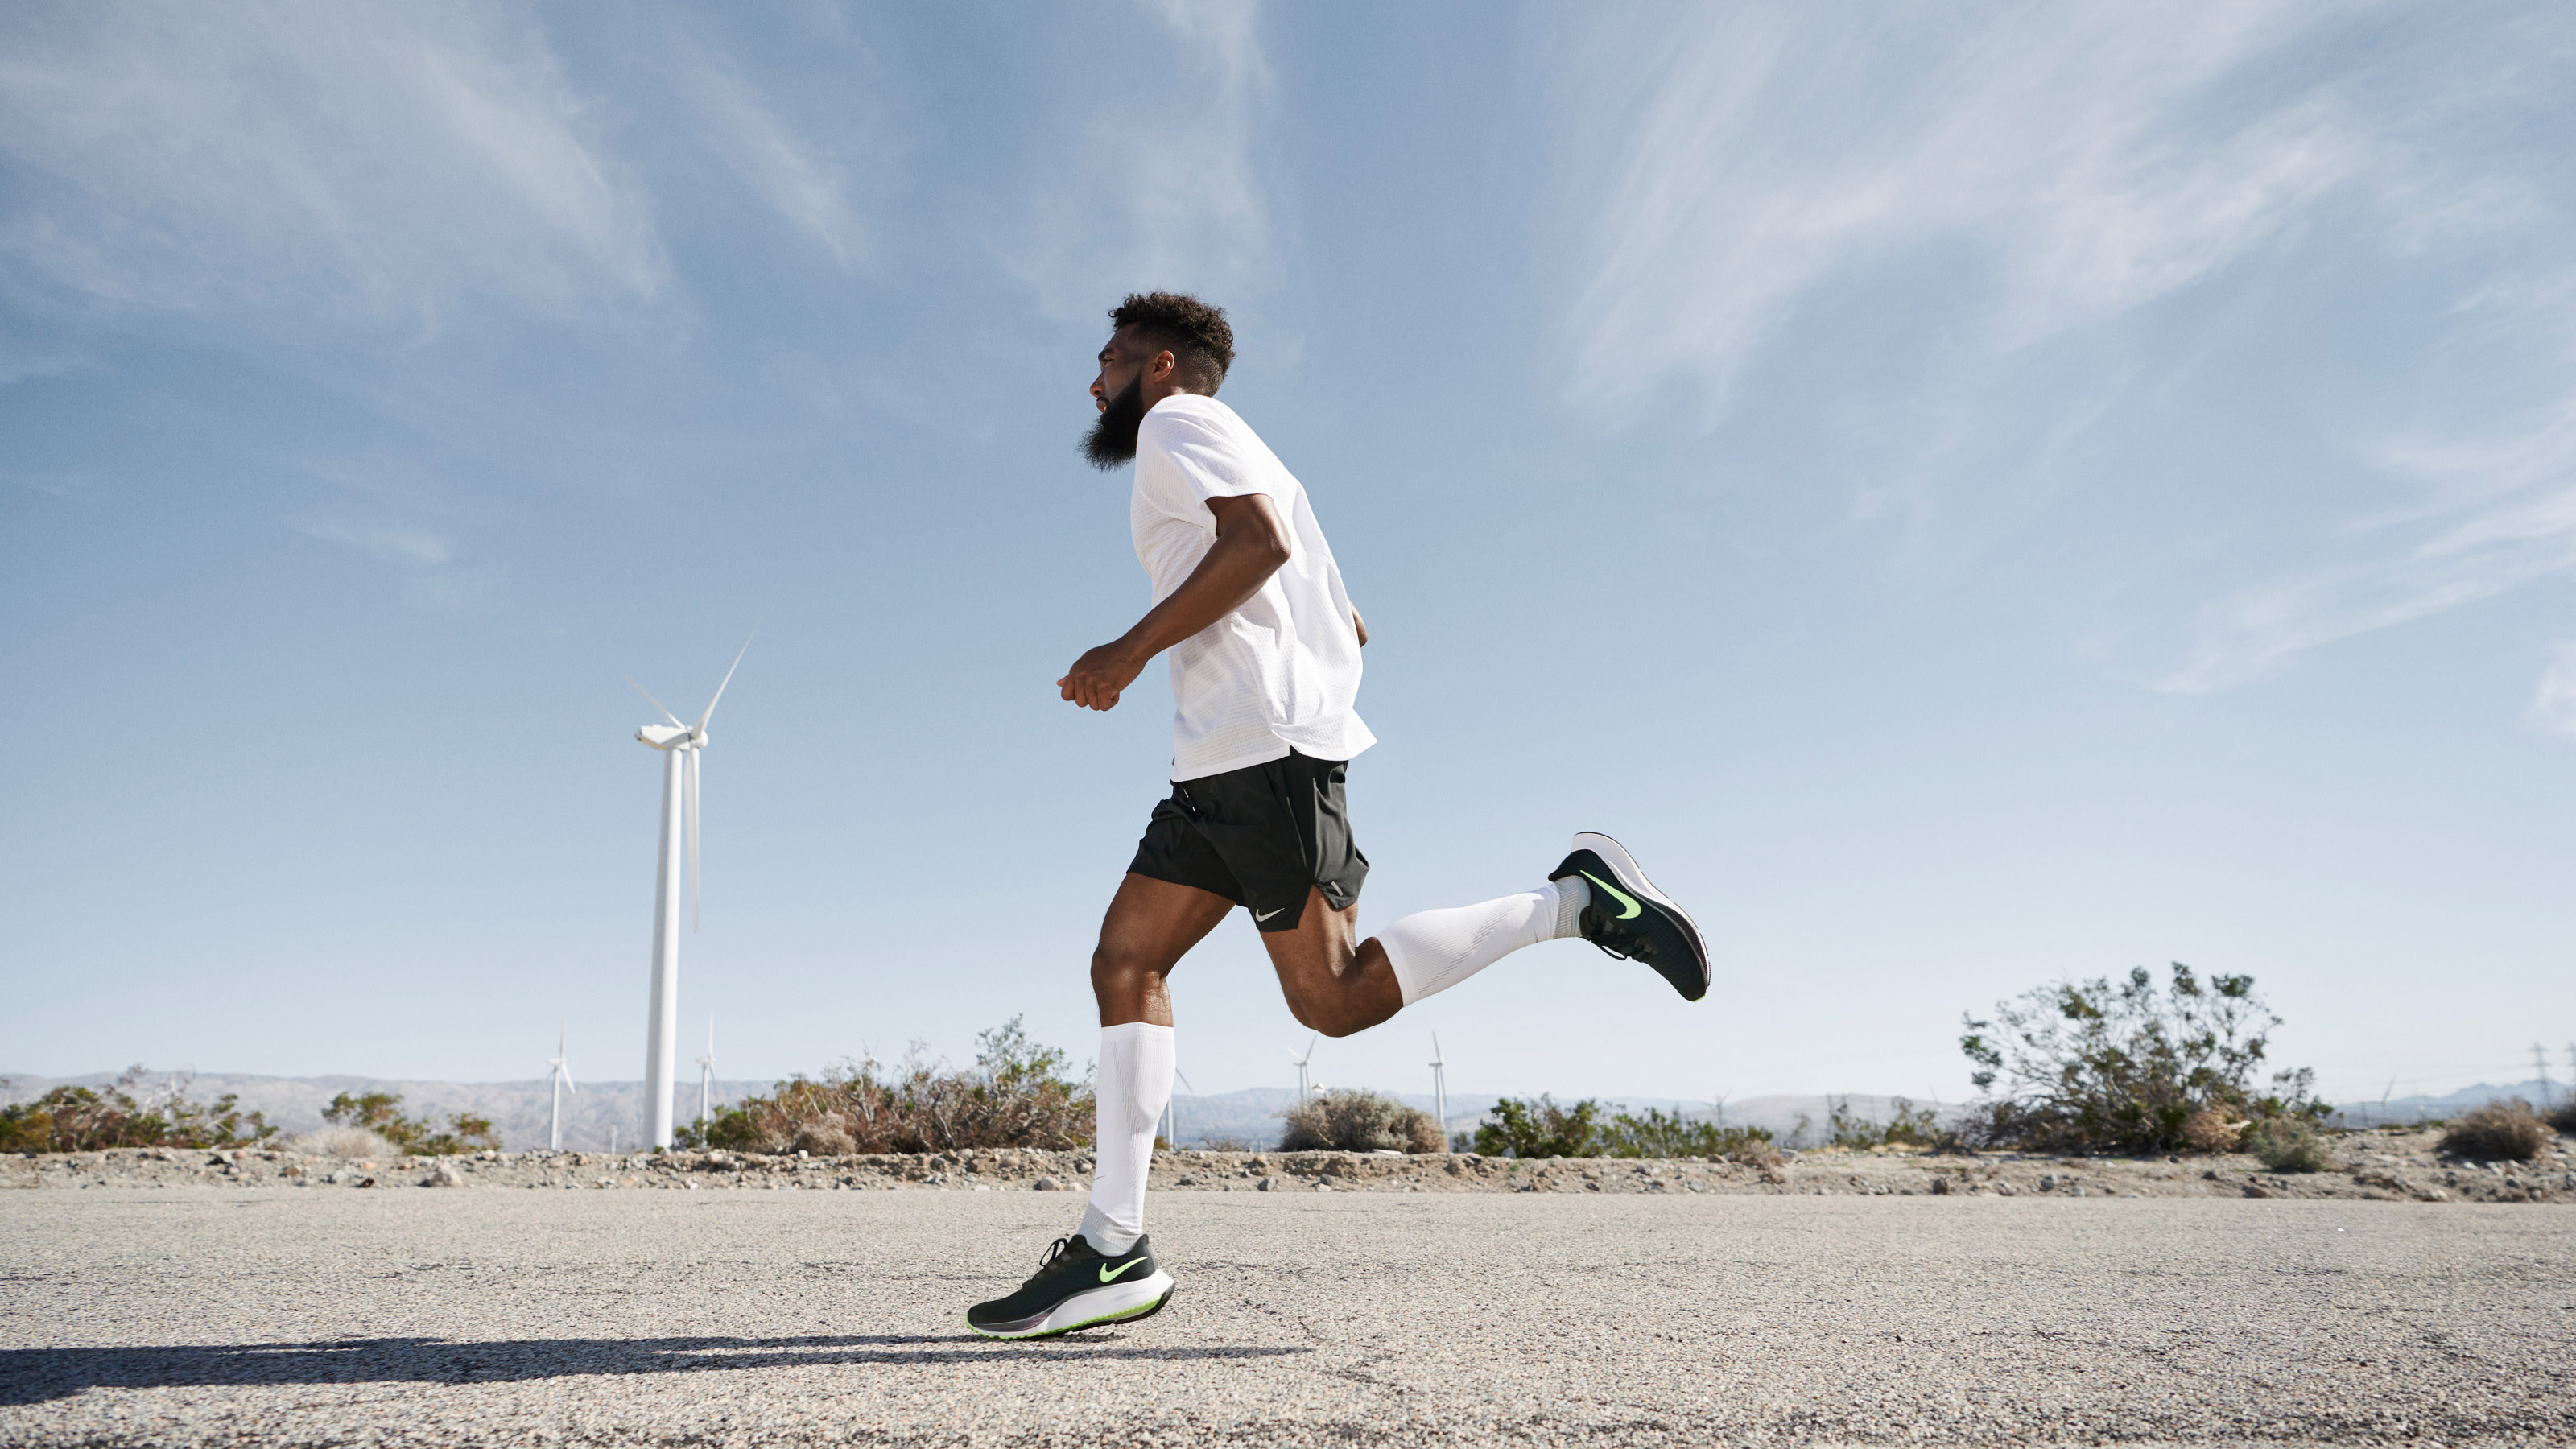 SIDA Inválido Volverse  Nike Air Zoom Pegasus 37 review: the best everyday running trainer from Nike  | T3